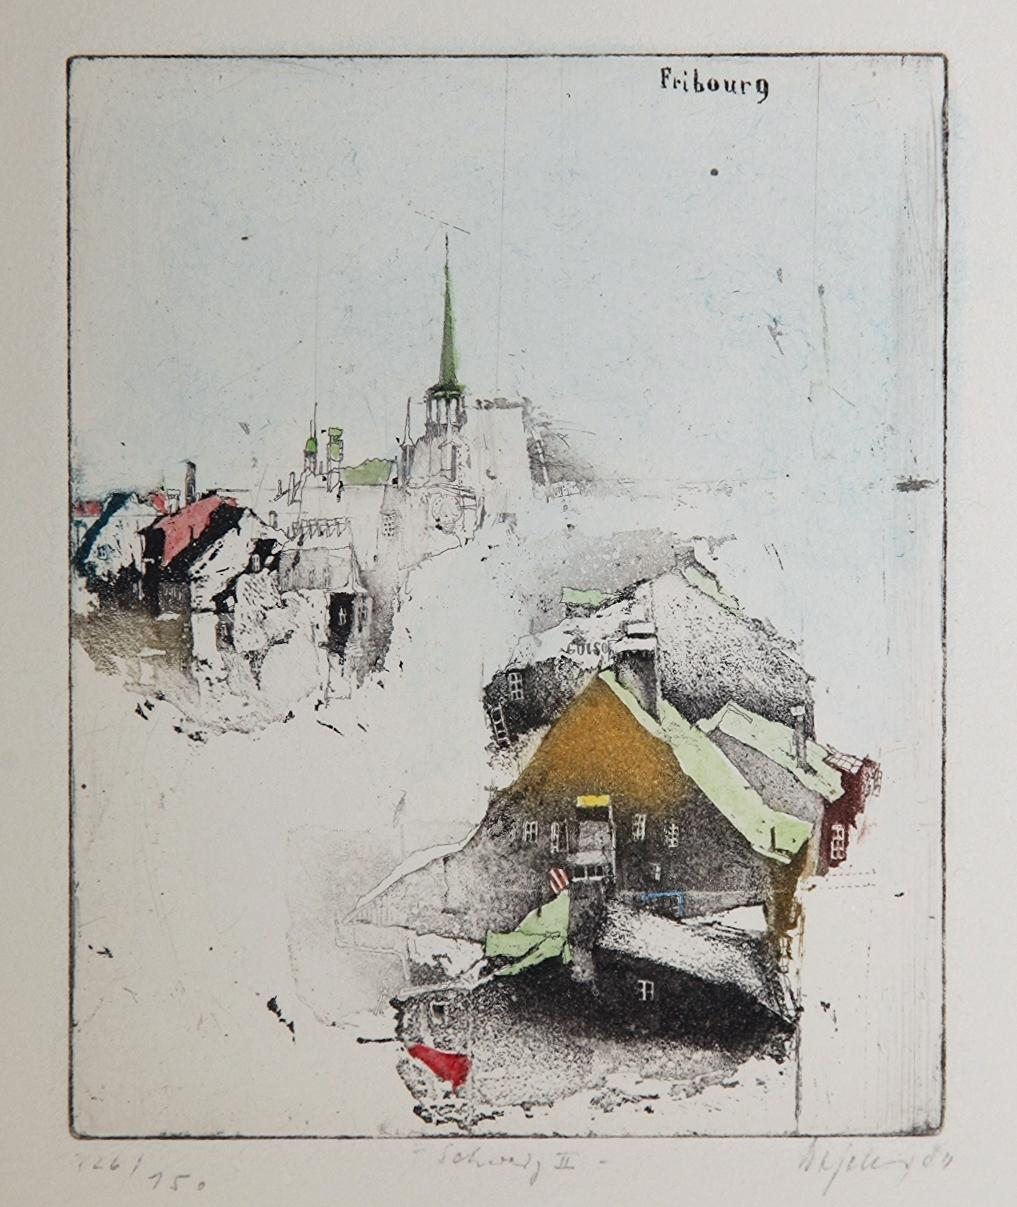 Fribourg, Alexander Befelein, Contemporary Limited Edition Print, Etching Yellow